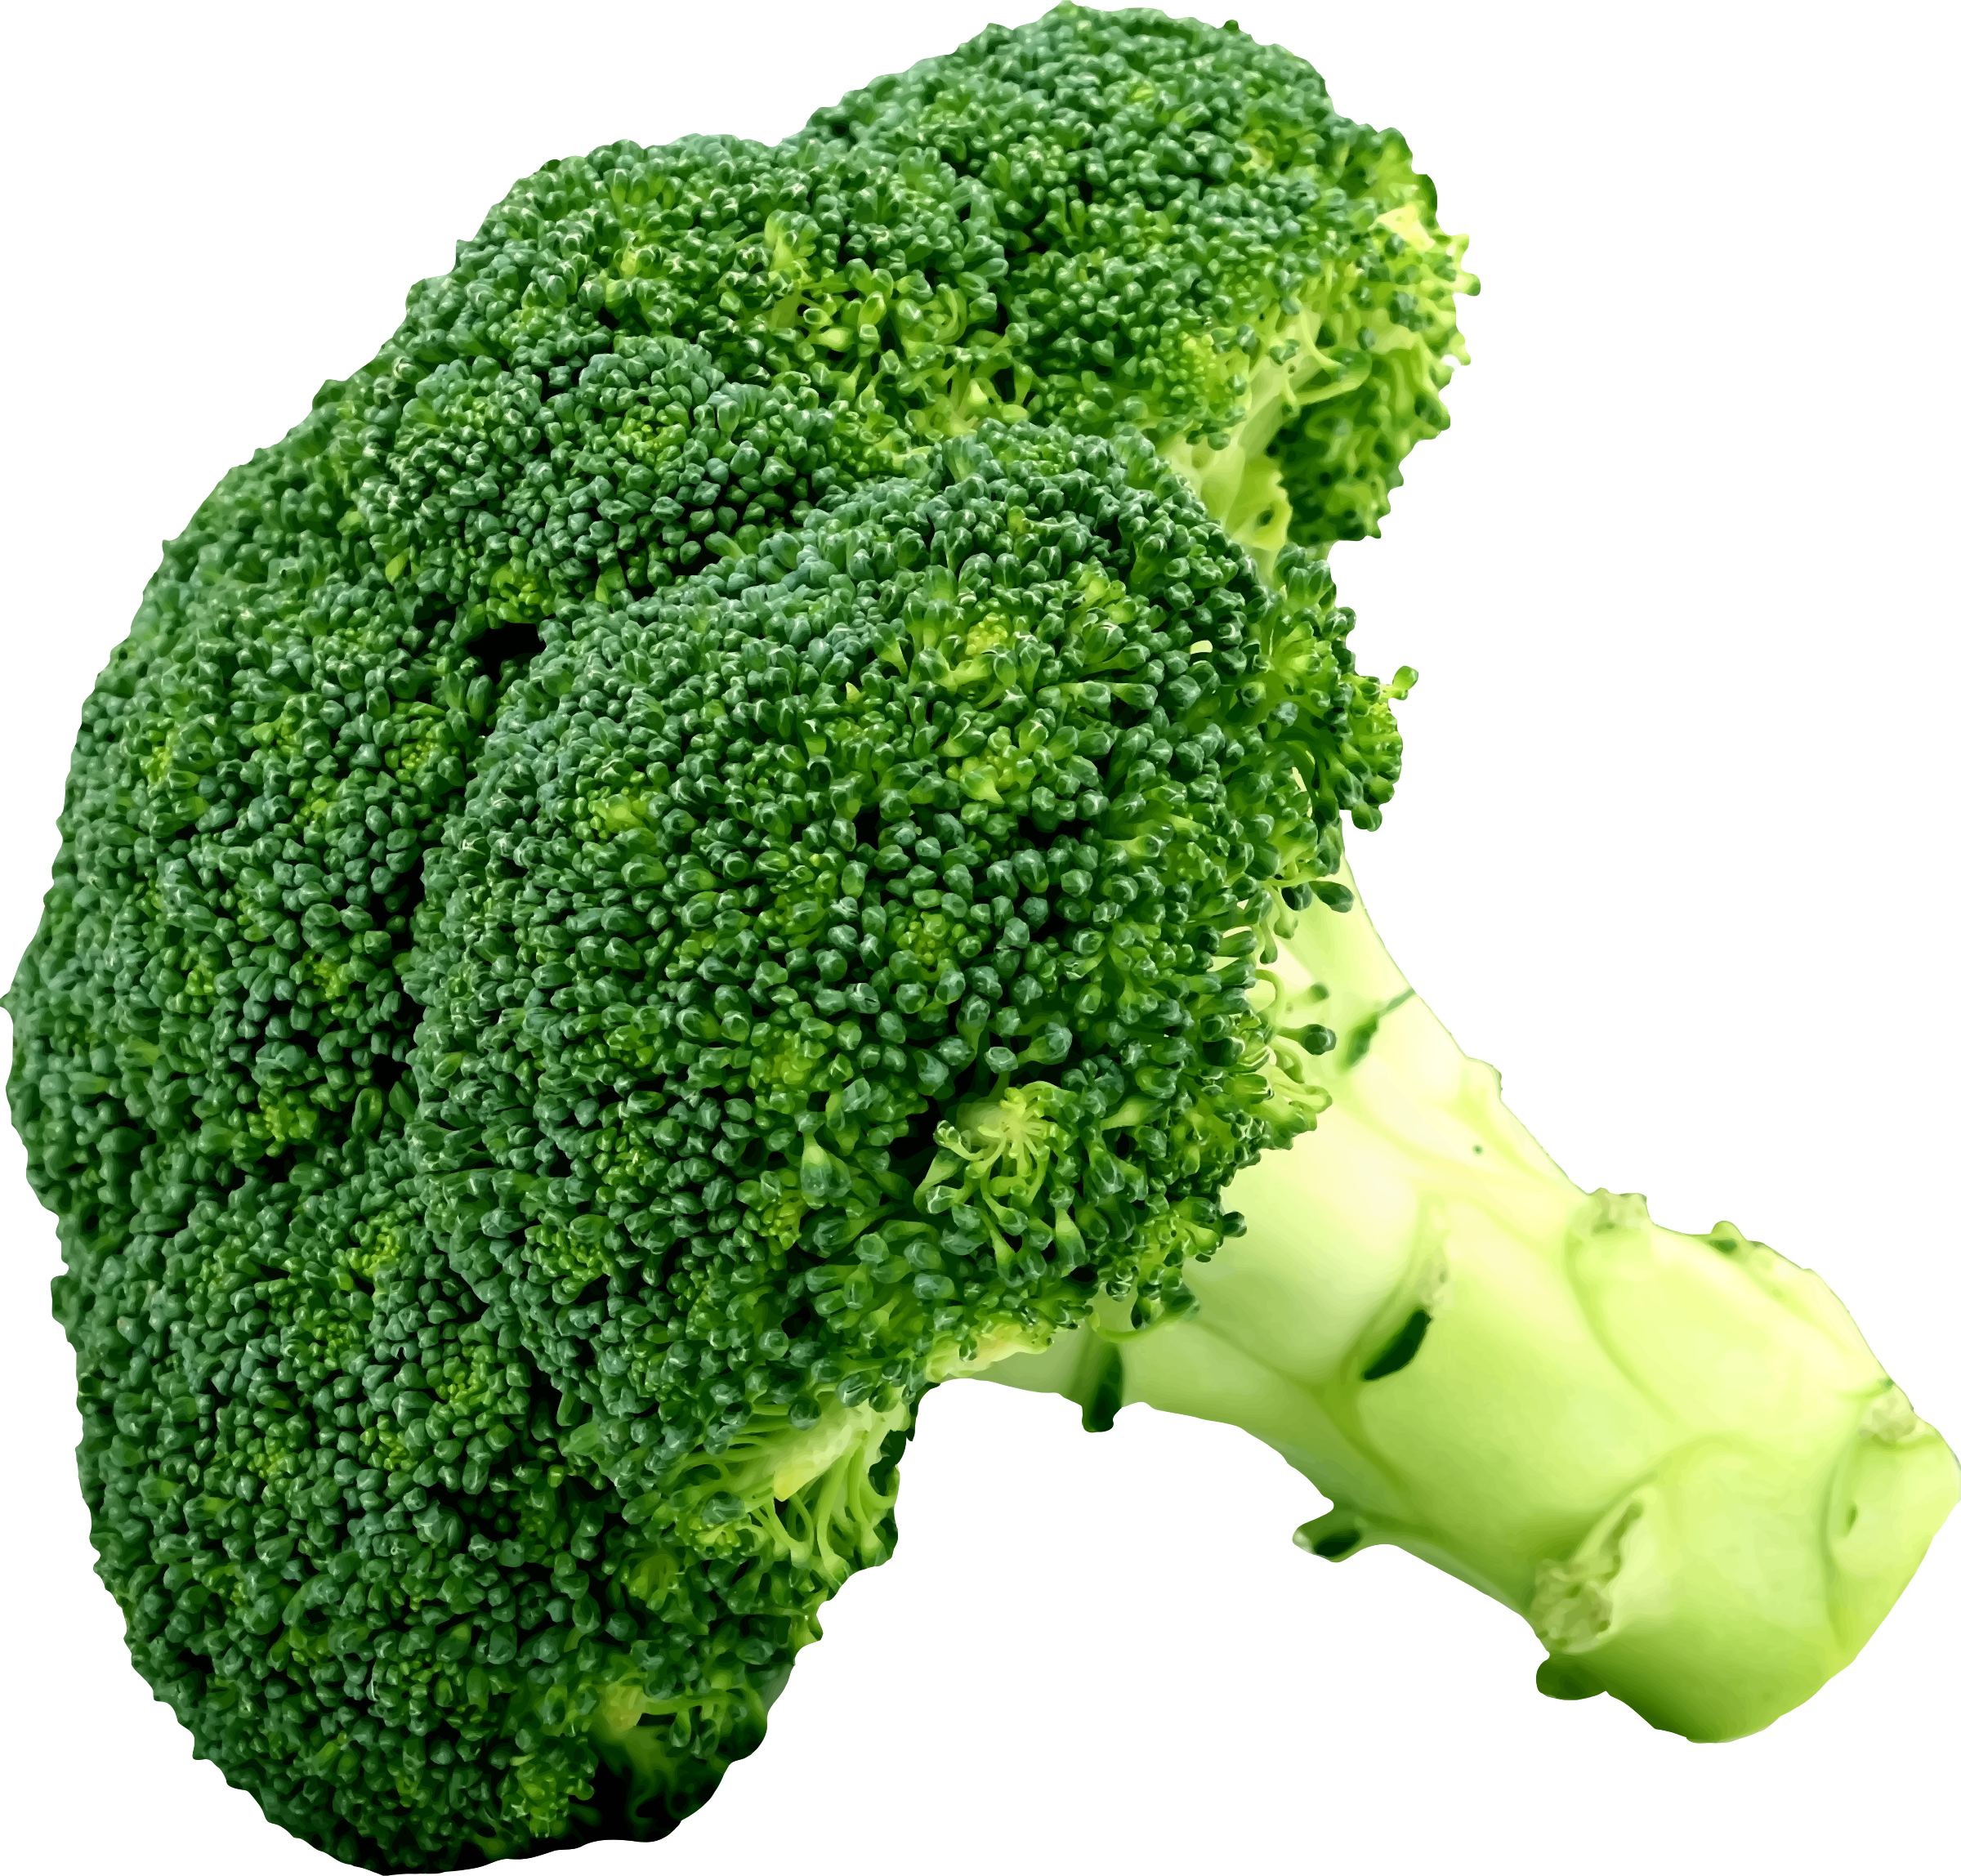 picture library Big image png. Broccoli clipart.